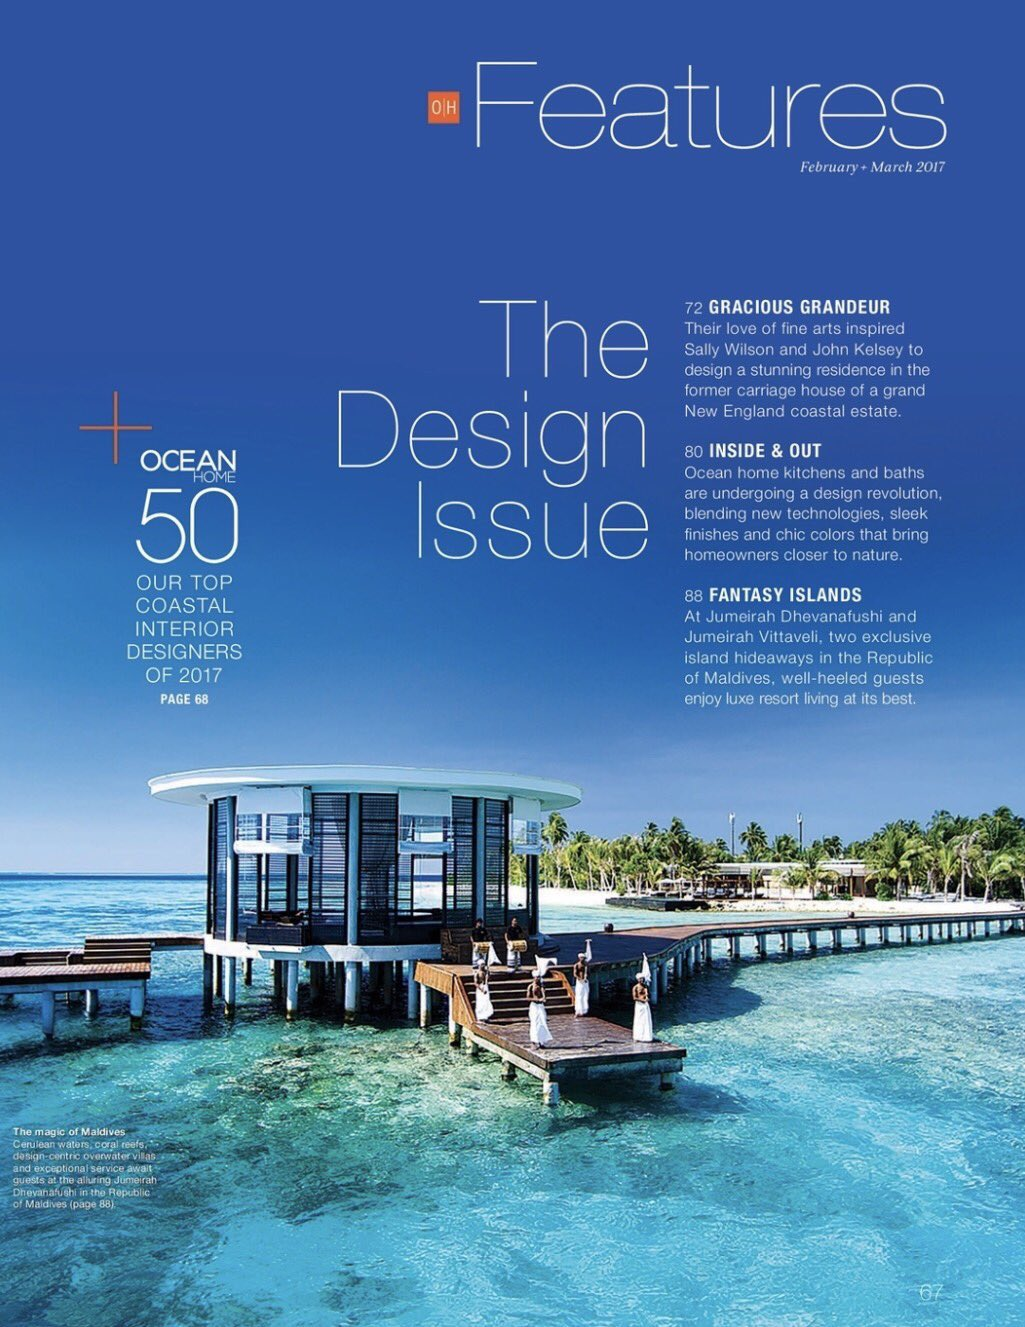 Campion Platt On Twitter The Top Coastal Interior Designers Of 2017 In OceanHomeMag Design Issue Interiordesign Lists Tco ZUYwt60SlF